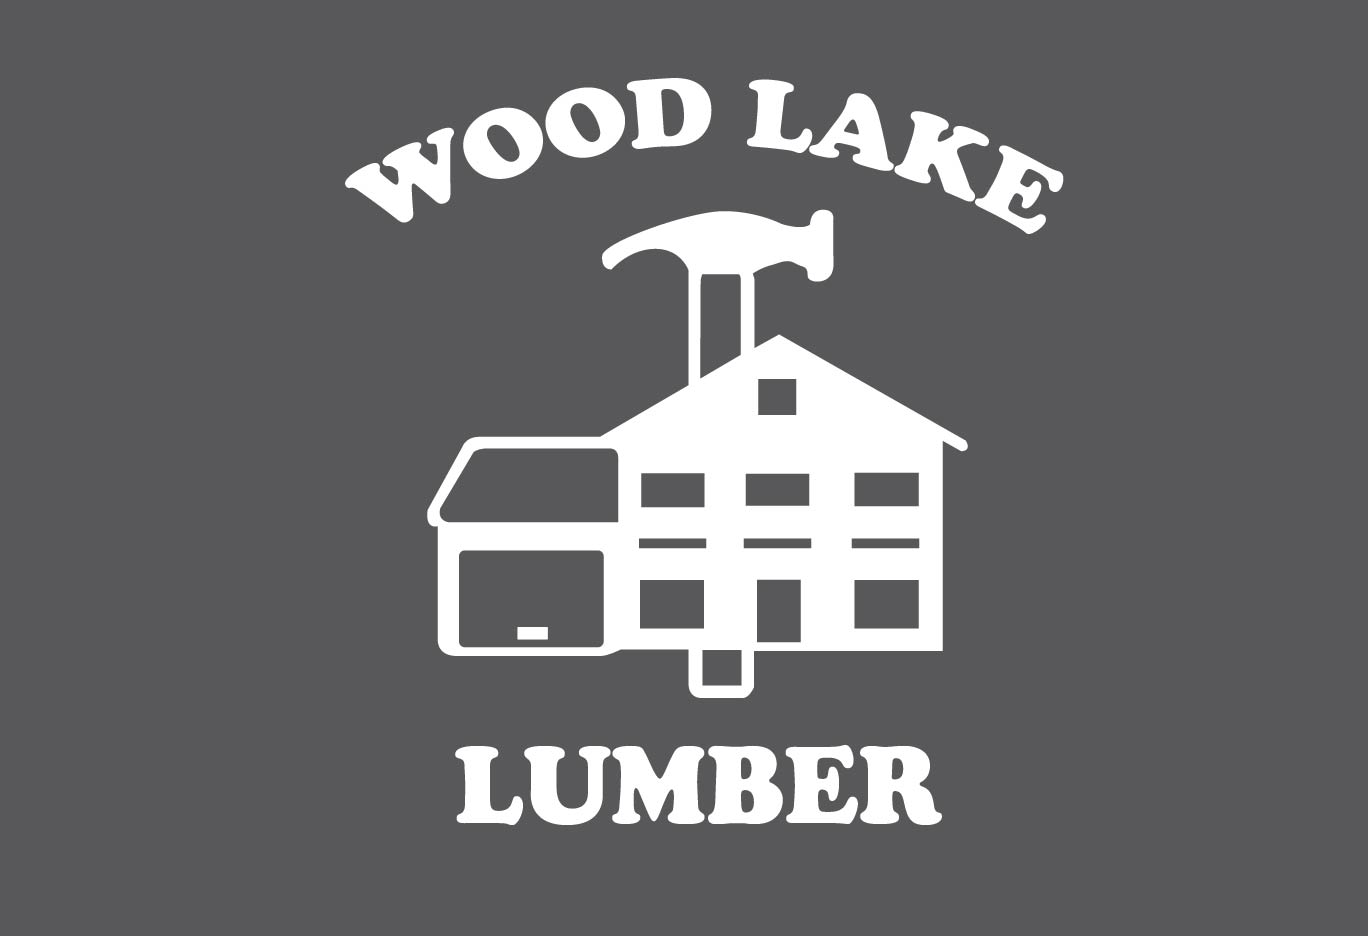 Wood Lake Lumber Irsfeld 2018